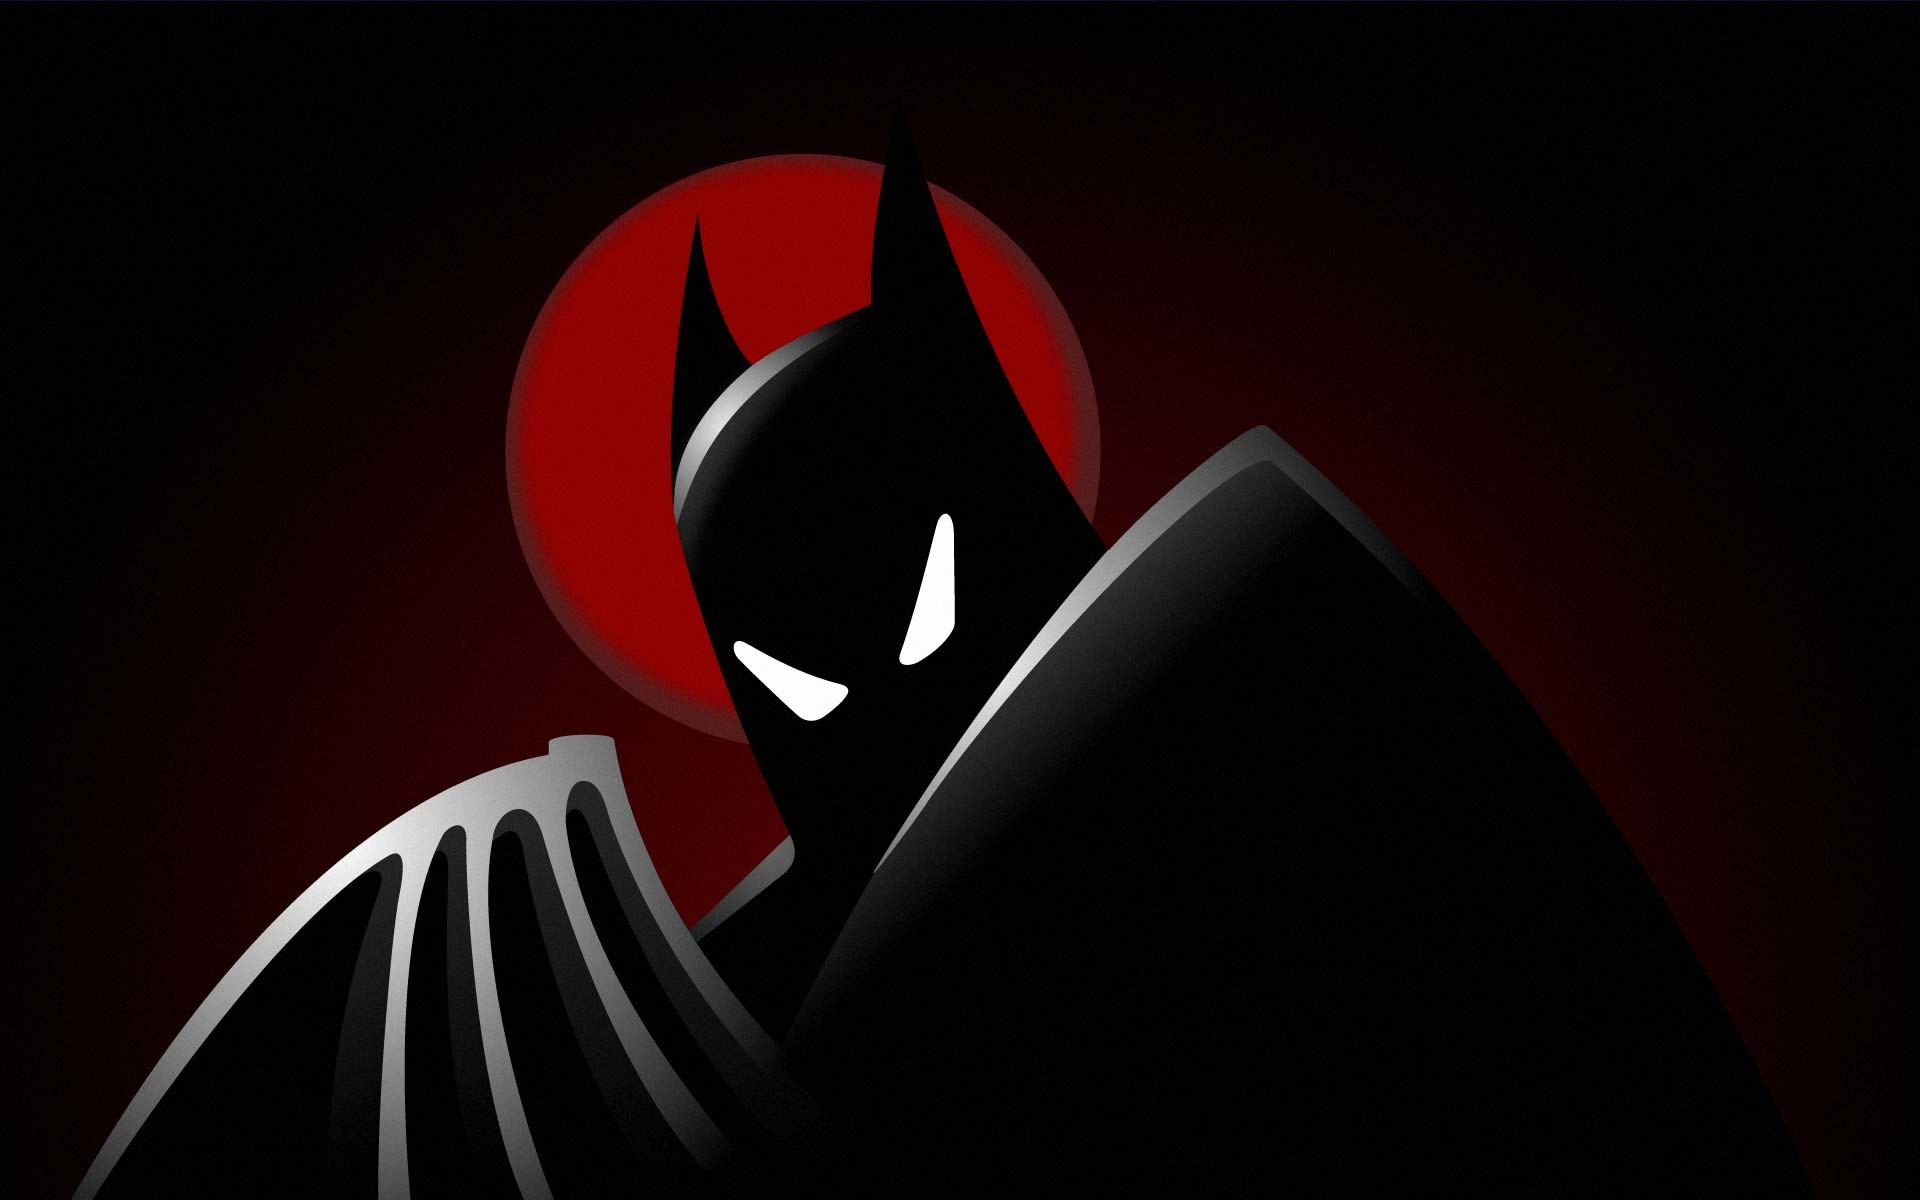 1920x1200 Batman Wallpaper - Batman Free Wallpaper - Cartoon Watcher - free .